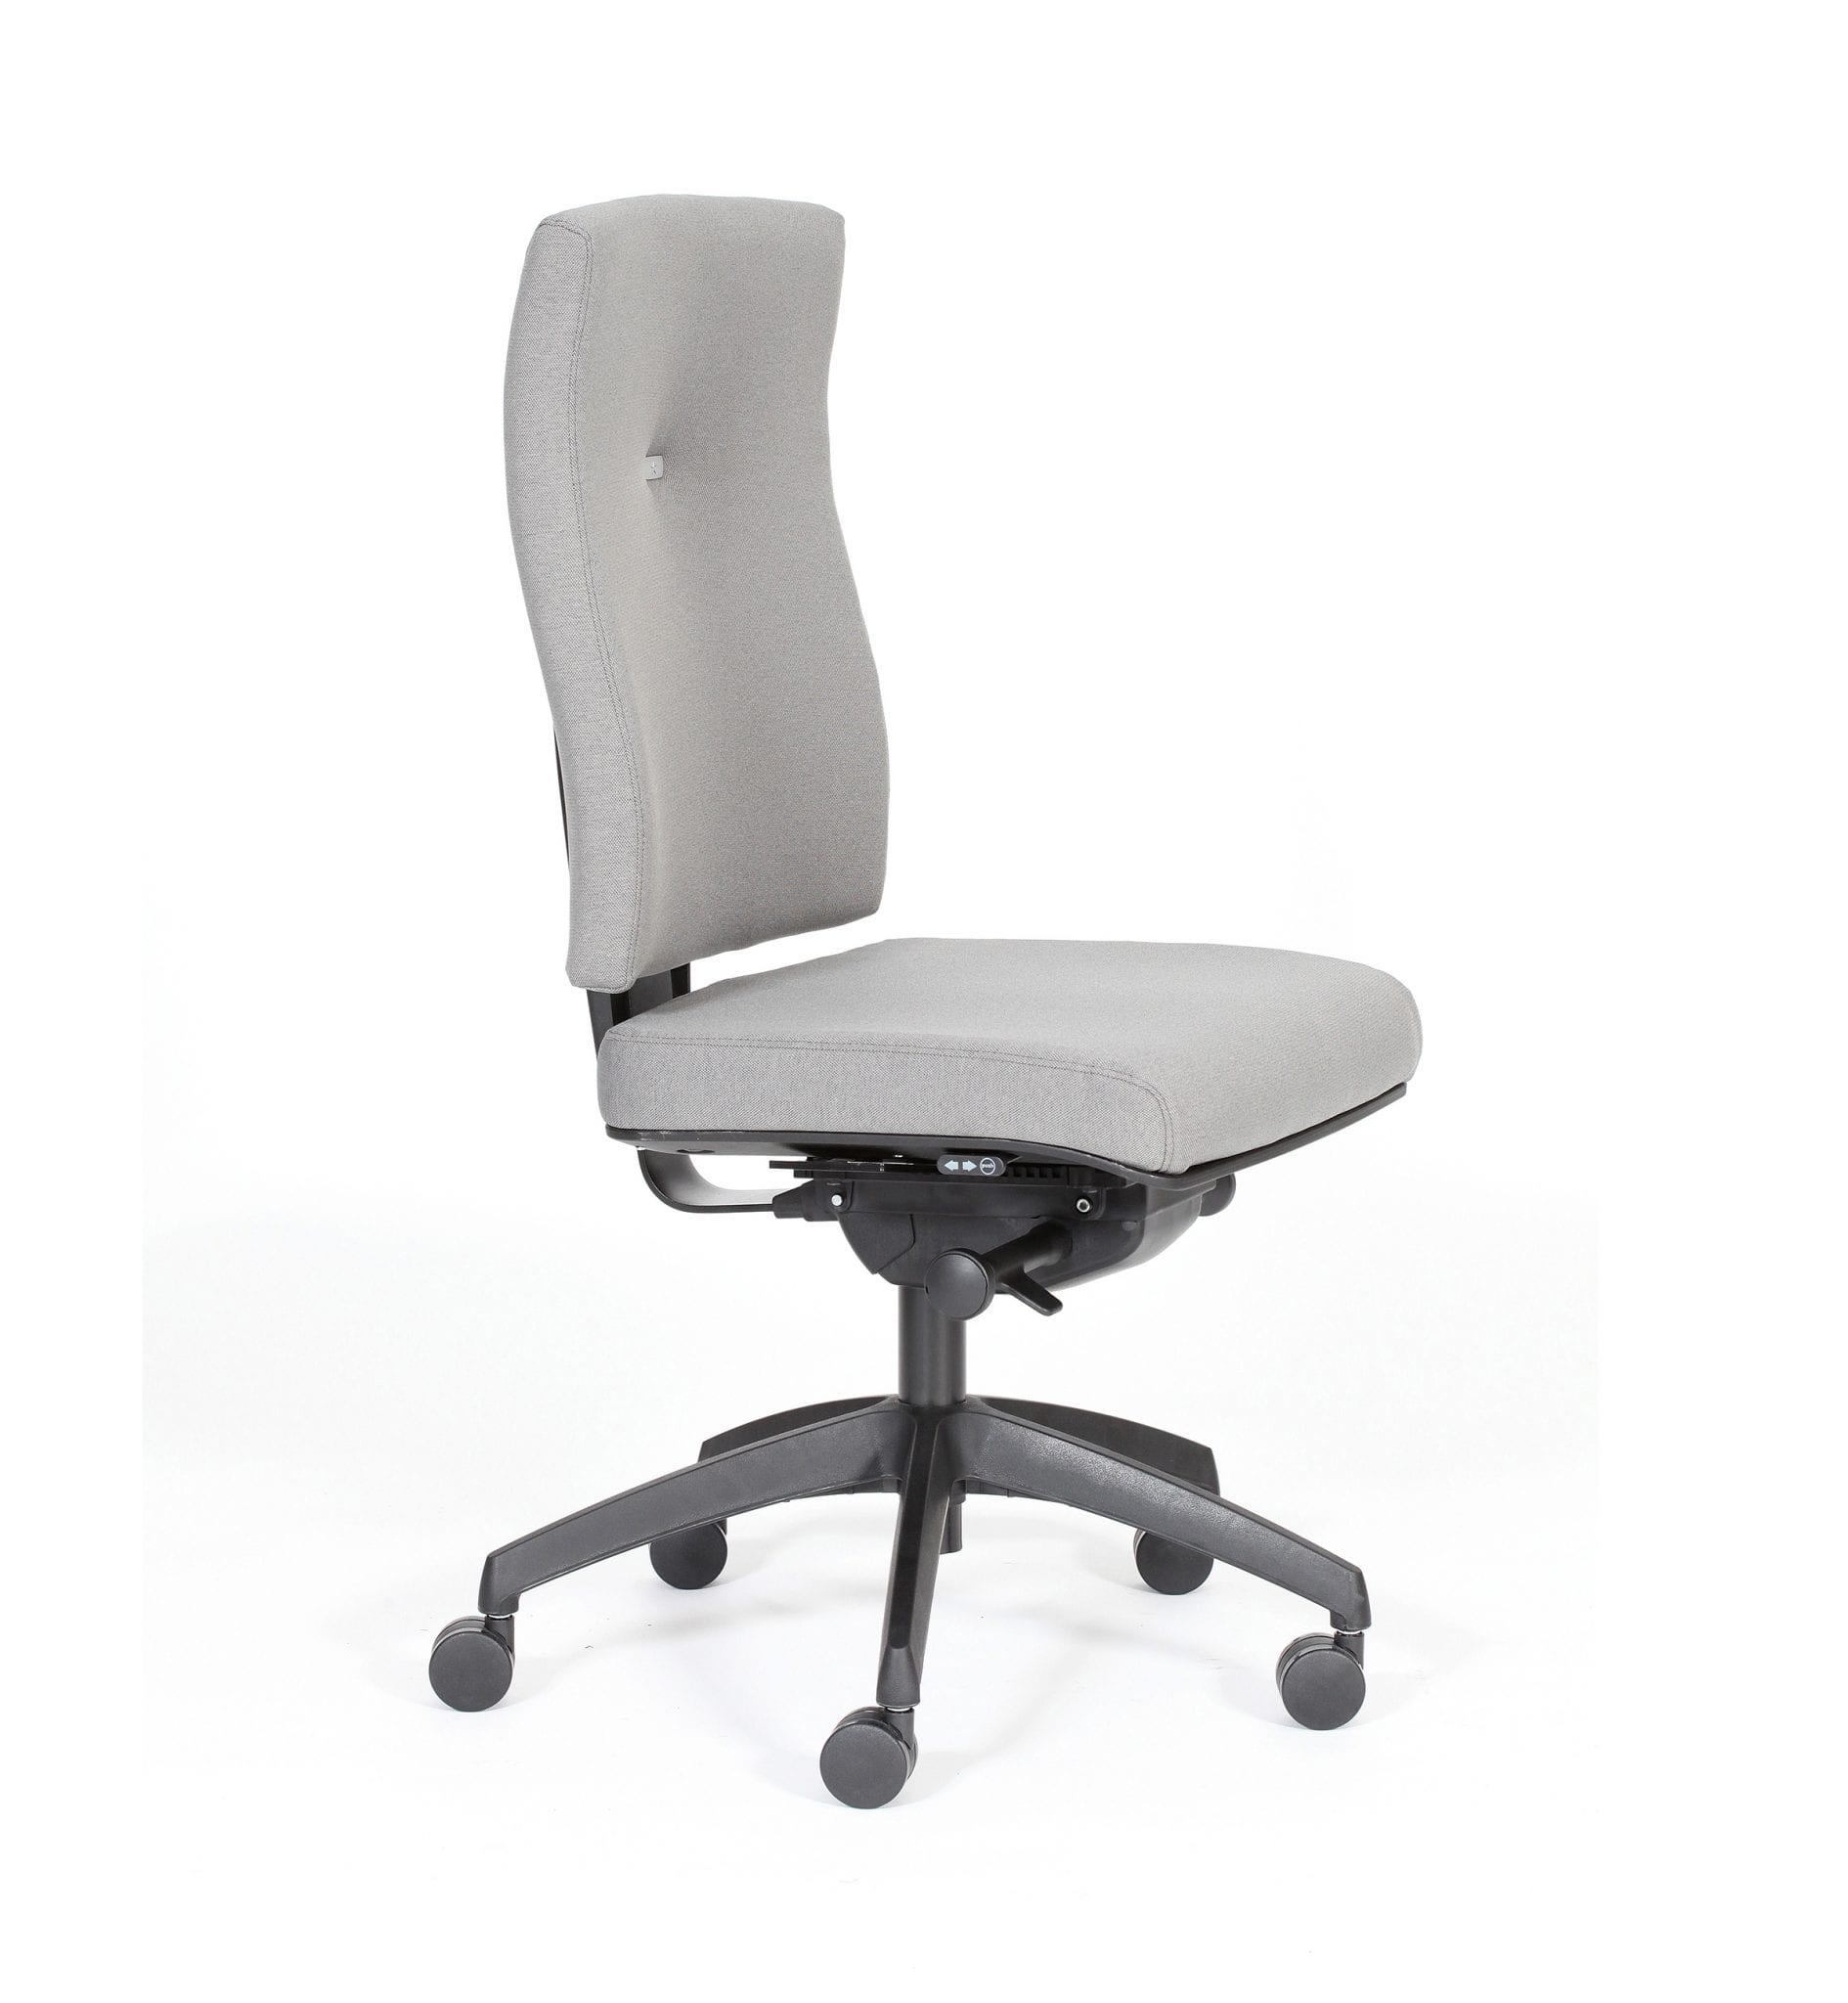 IM22 - Impact - task office chair boasting inflatable lumbar support and Operator Plus mechanism – from Summit Chairs